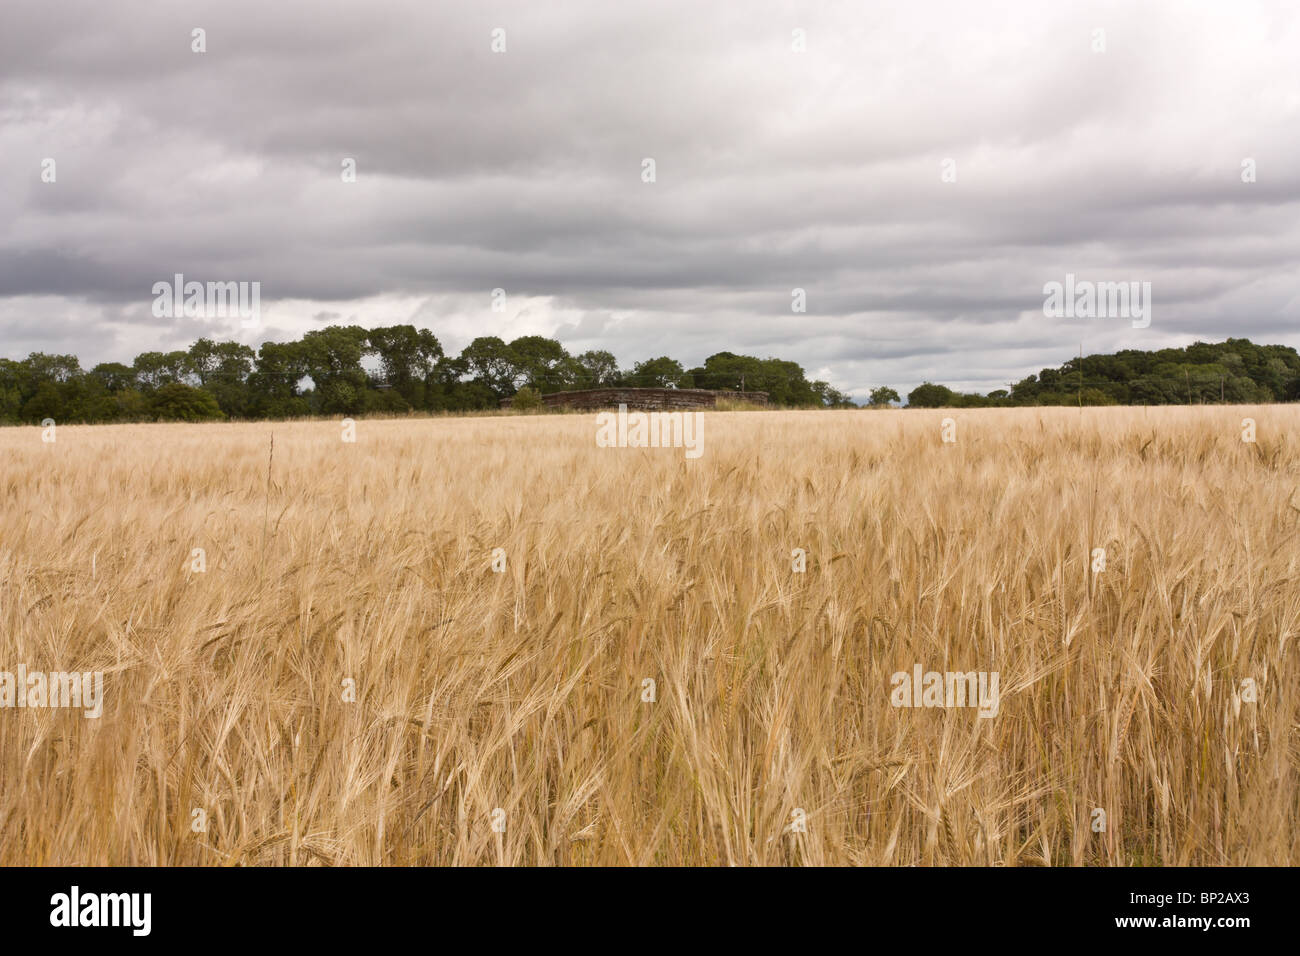 Scottish farming scene of ripe cereal crop in foreground. - Stock Image